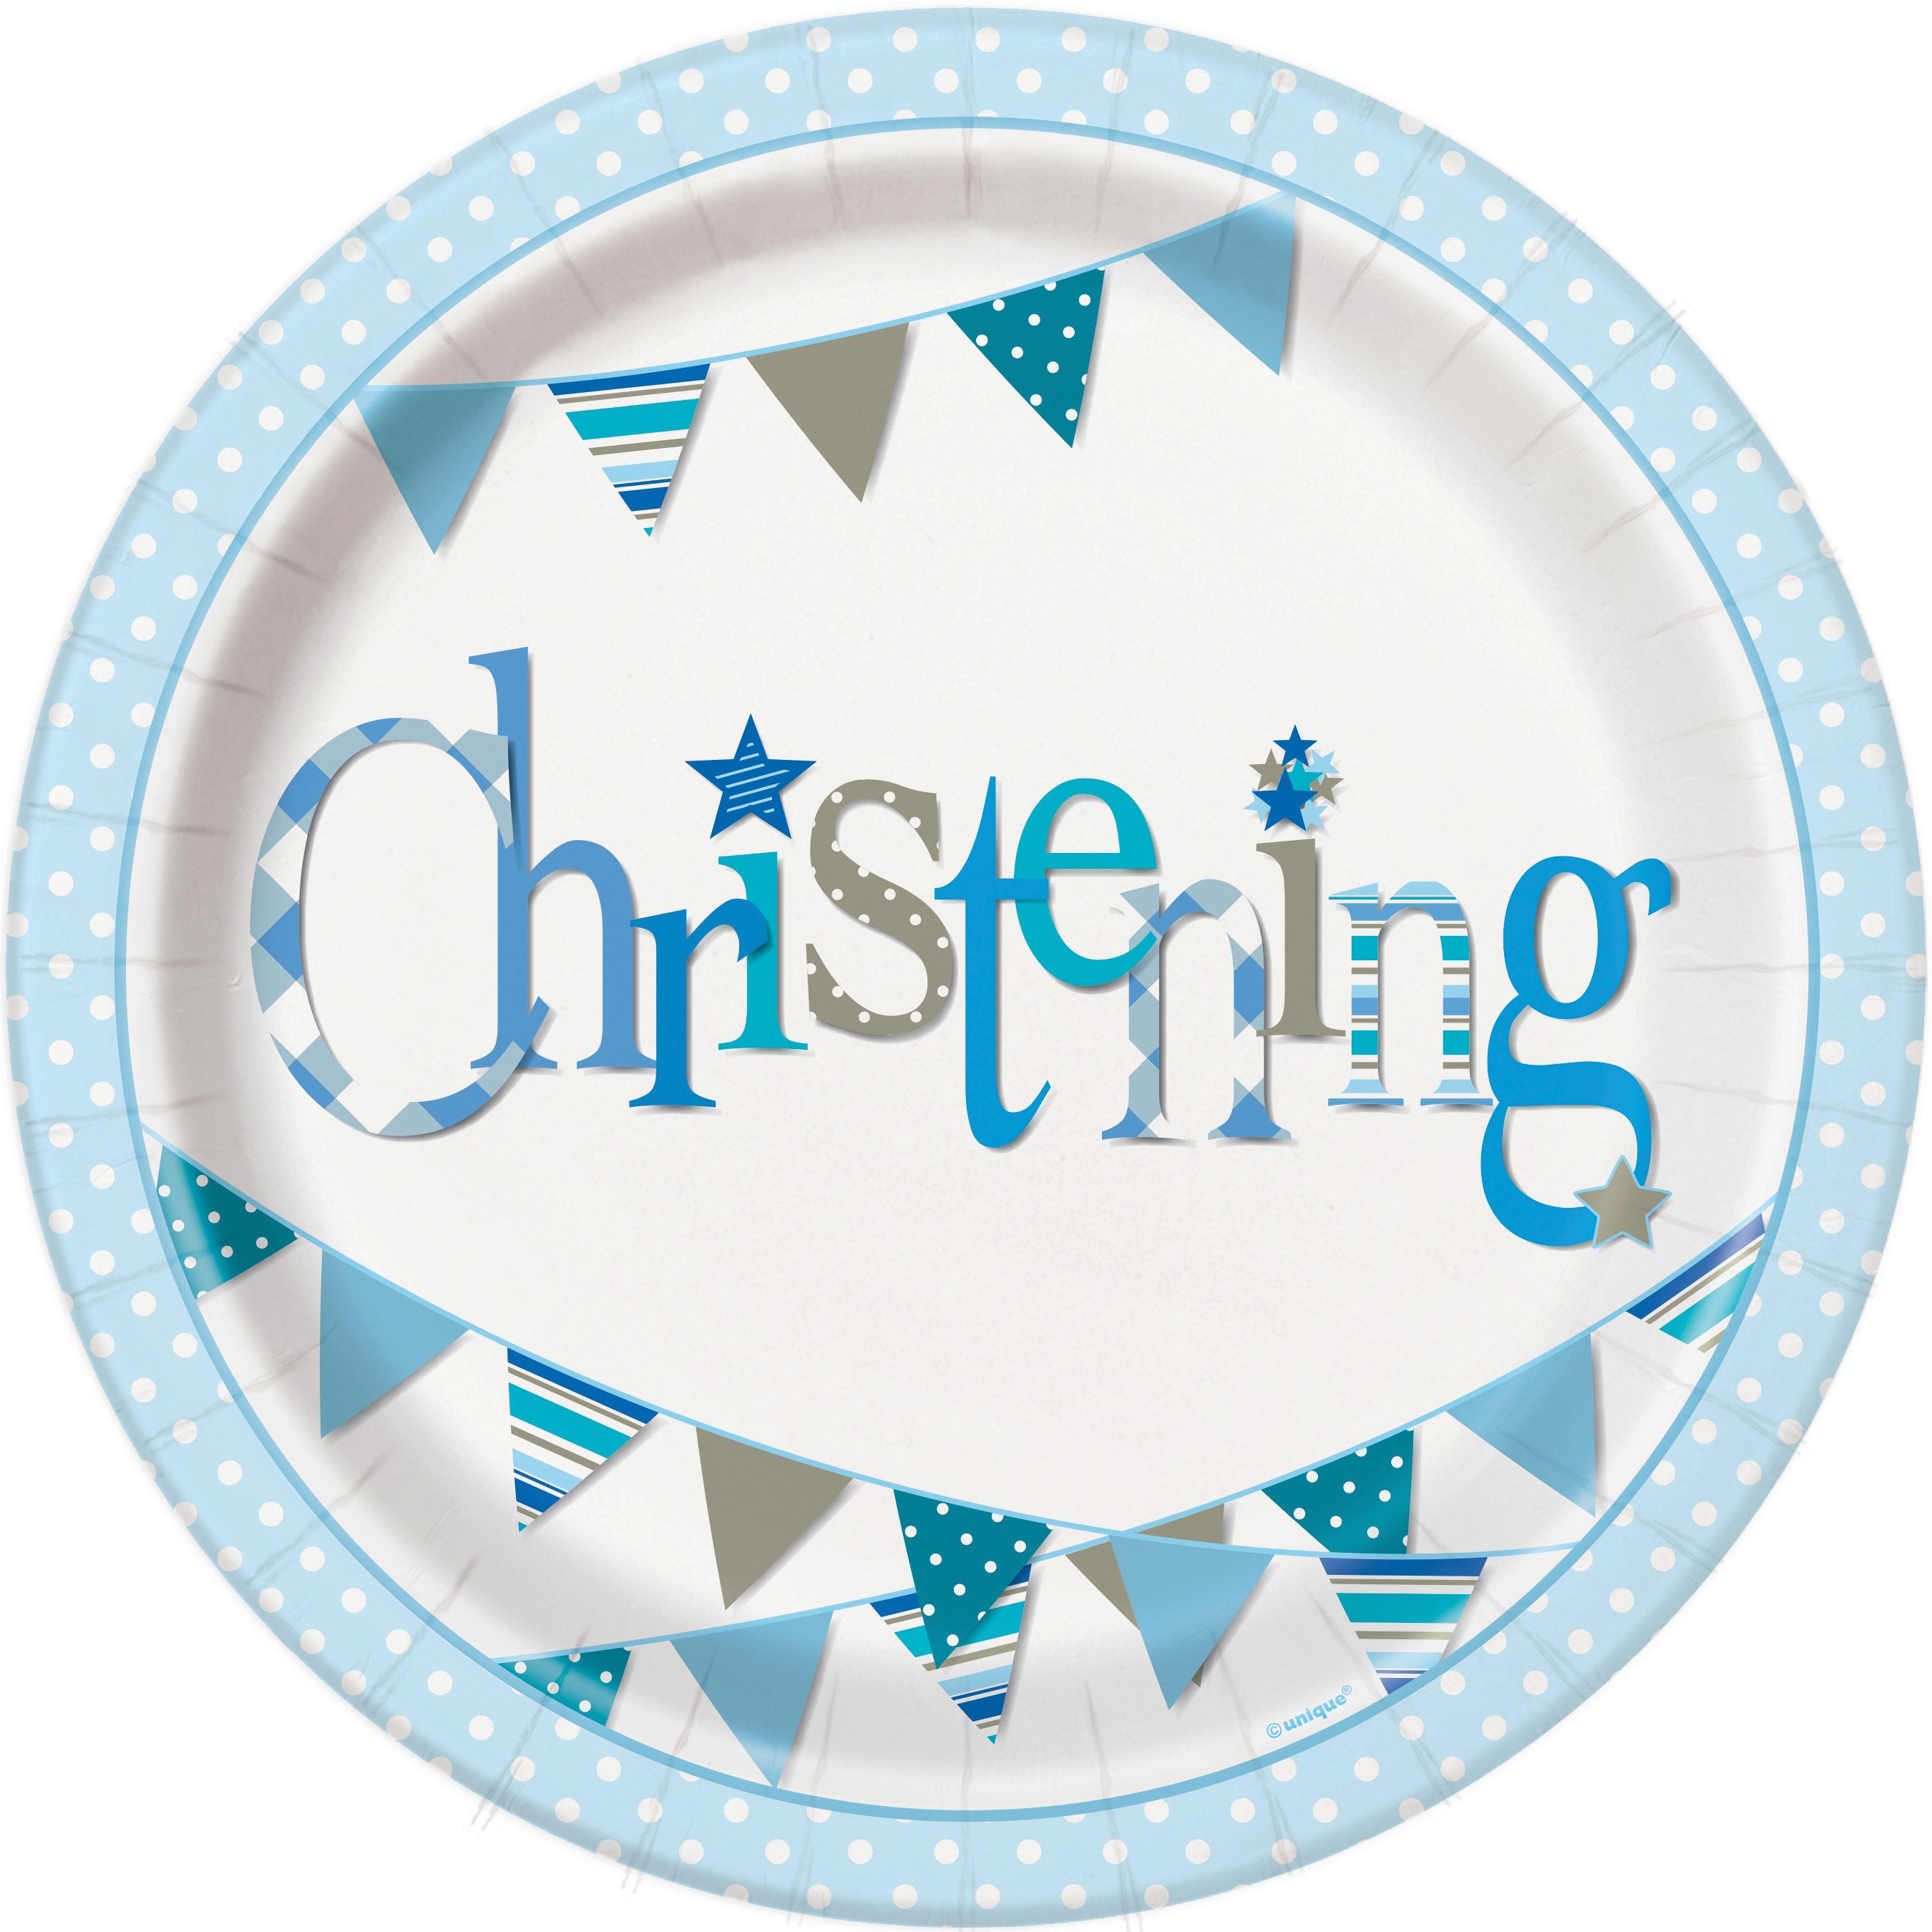 8 x Blue Christening Paper Plates - Pretty Boys Christening Party Tableware  sc 1 st  eBay & 8 x Blue Christening Paper Plates - Pretty Boys Christening Party ...